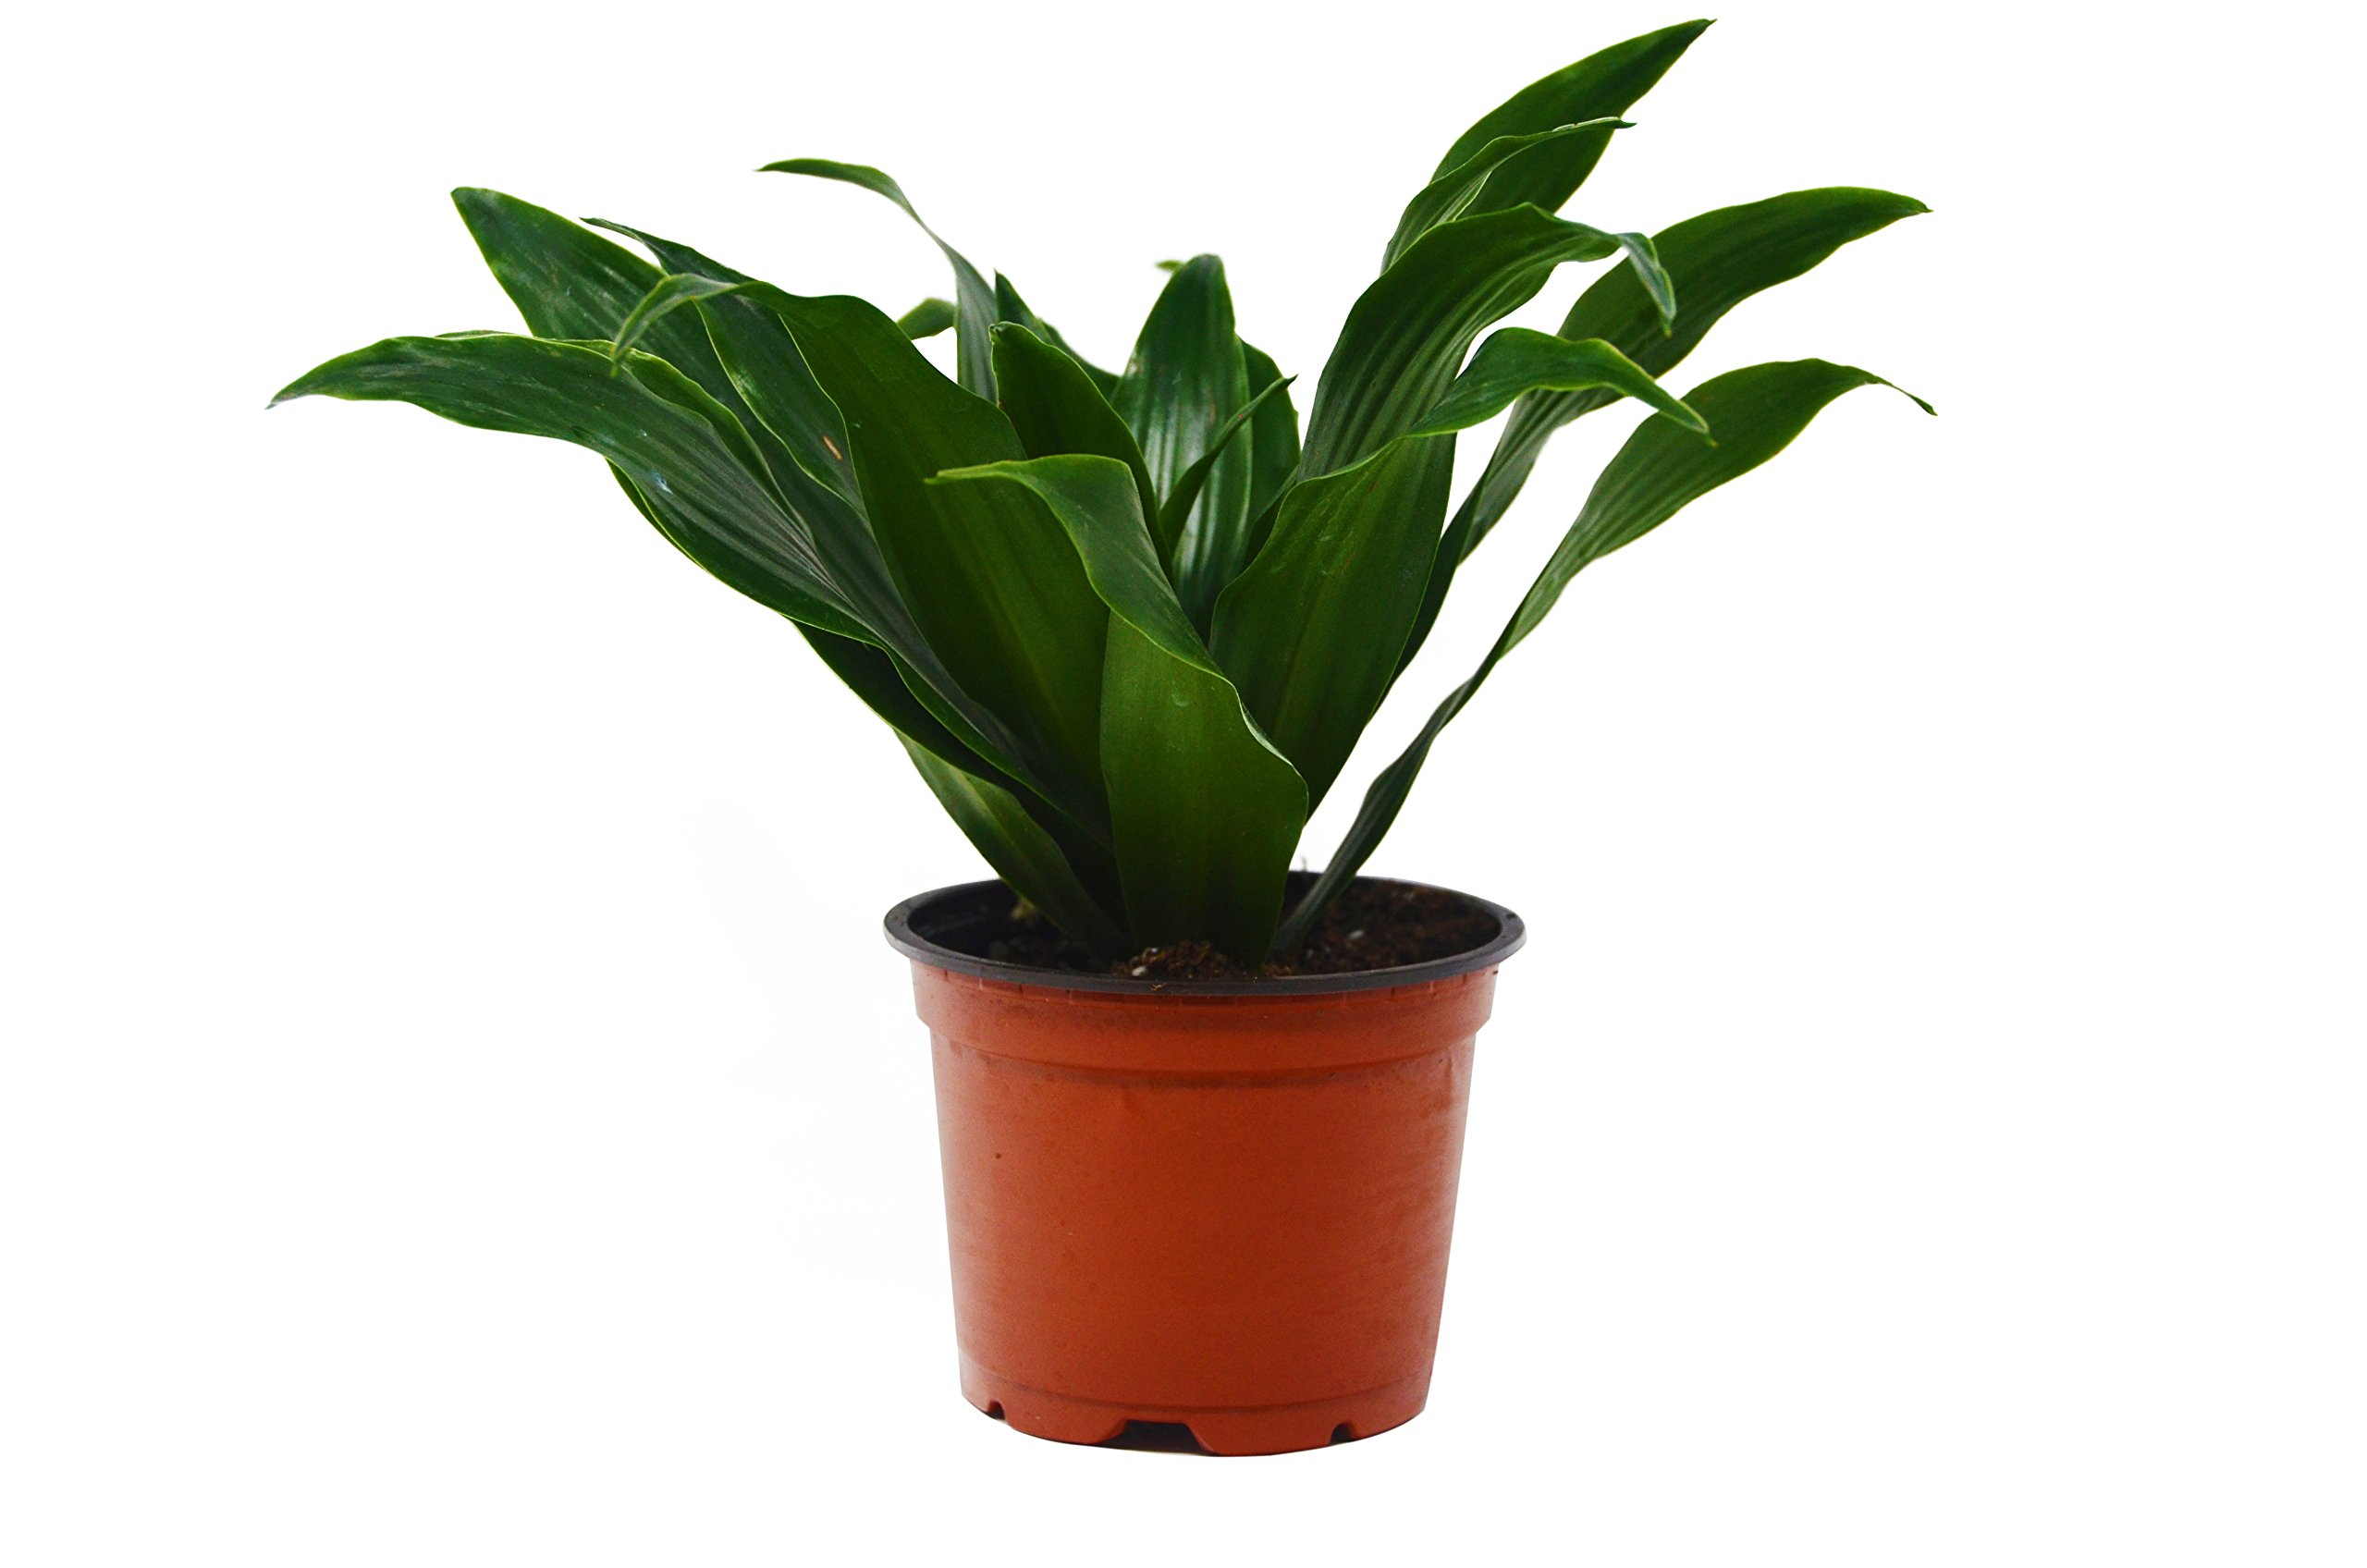 Dracaena 'Warneckii' - Live House Plant - FREE Care Guide - 4'' Pot - HARD TO KILL by House Plant Shop